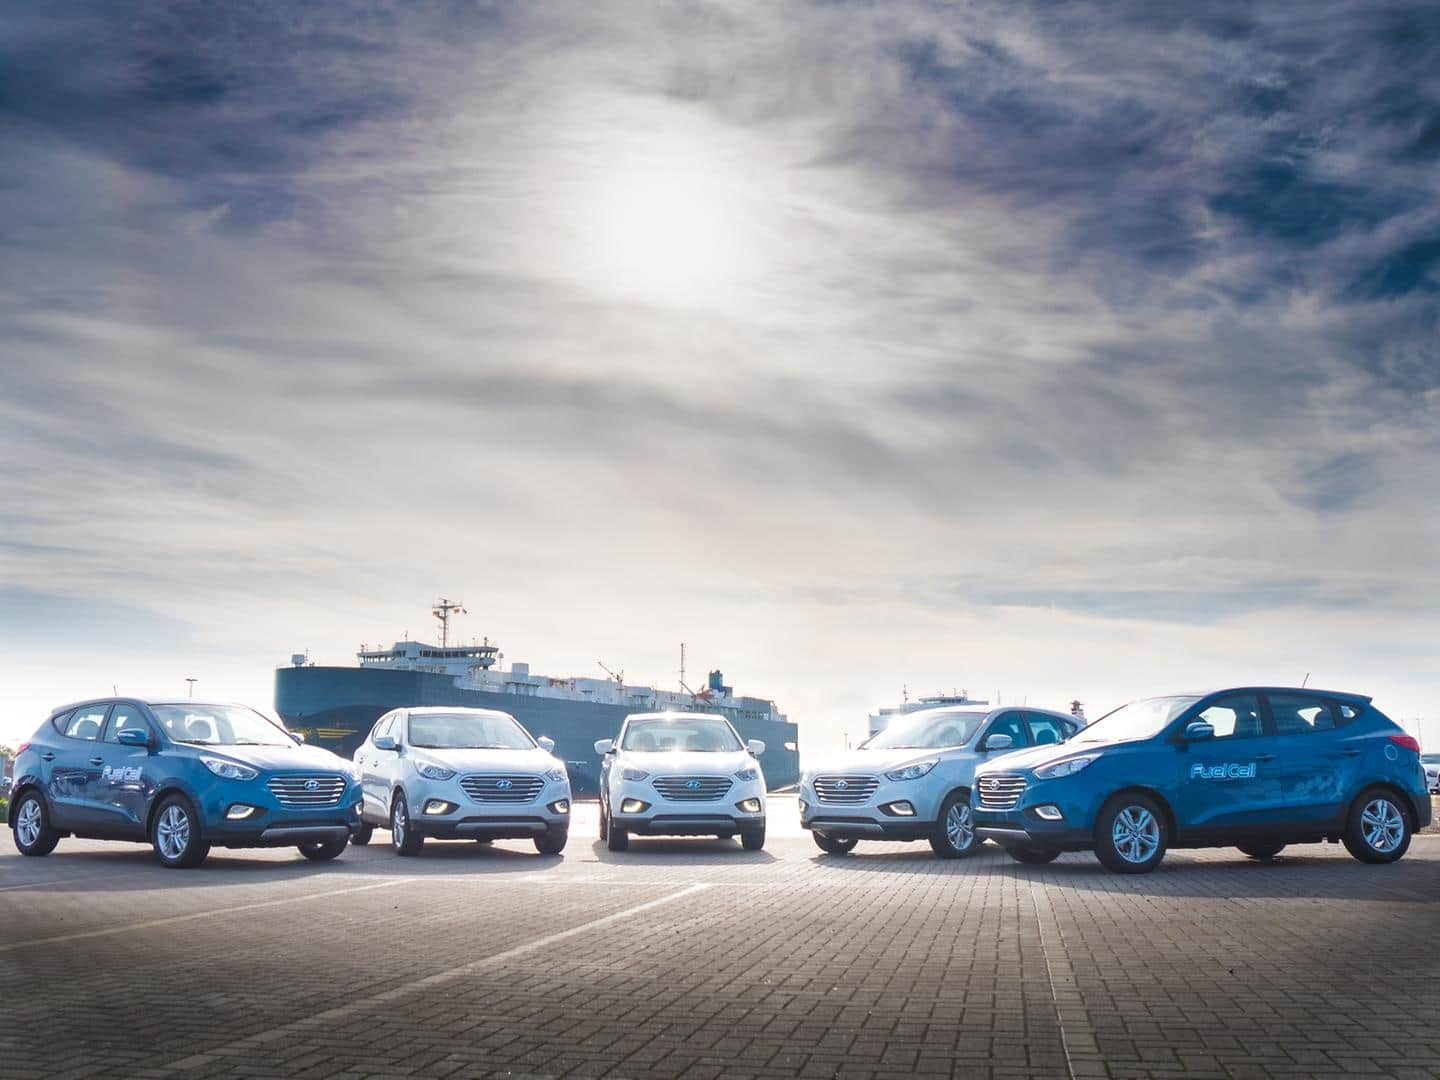 50 more deliveries in Europe keep Hyundai Motor at the forefront of hydrogen fuel cell vehicle roll-out